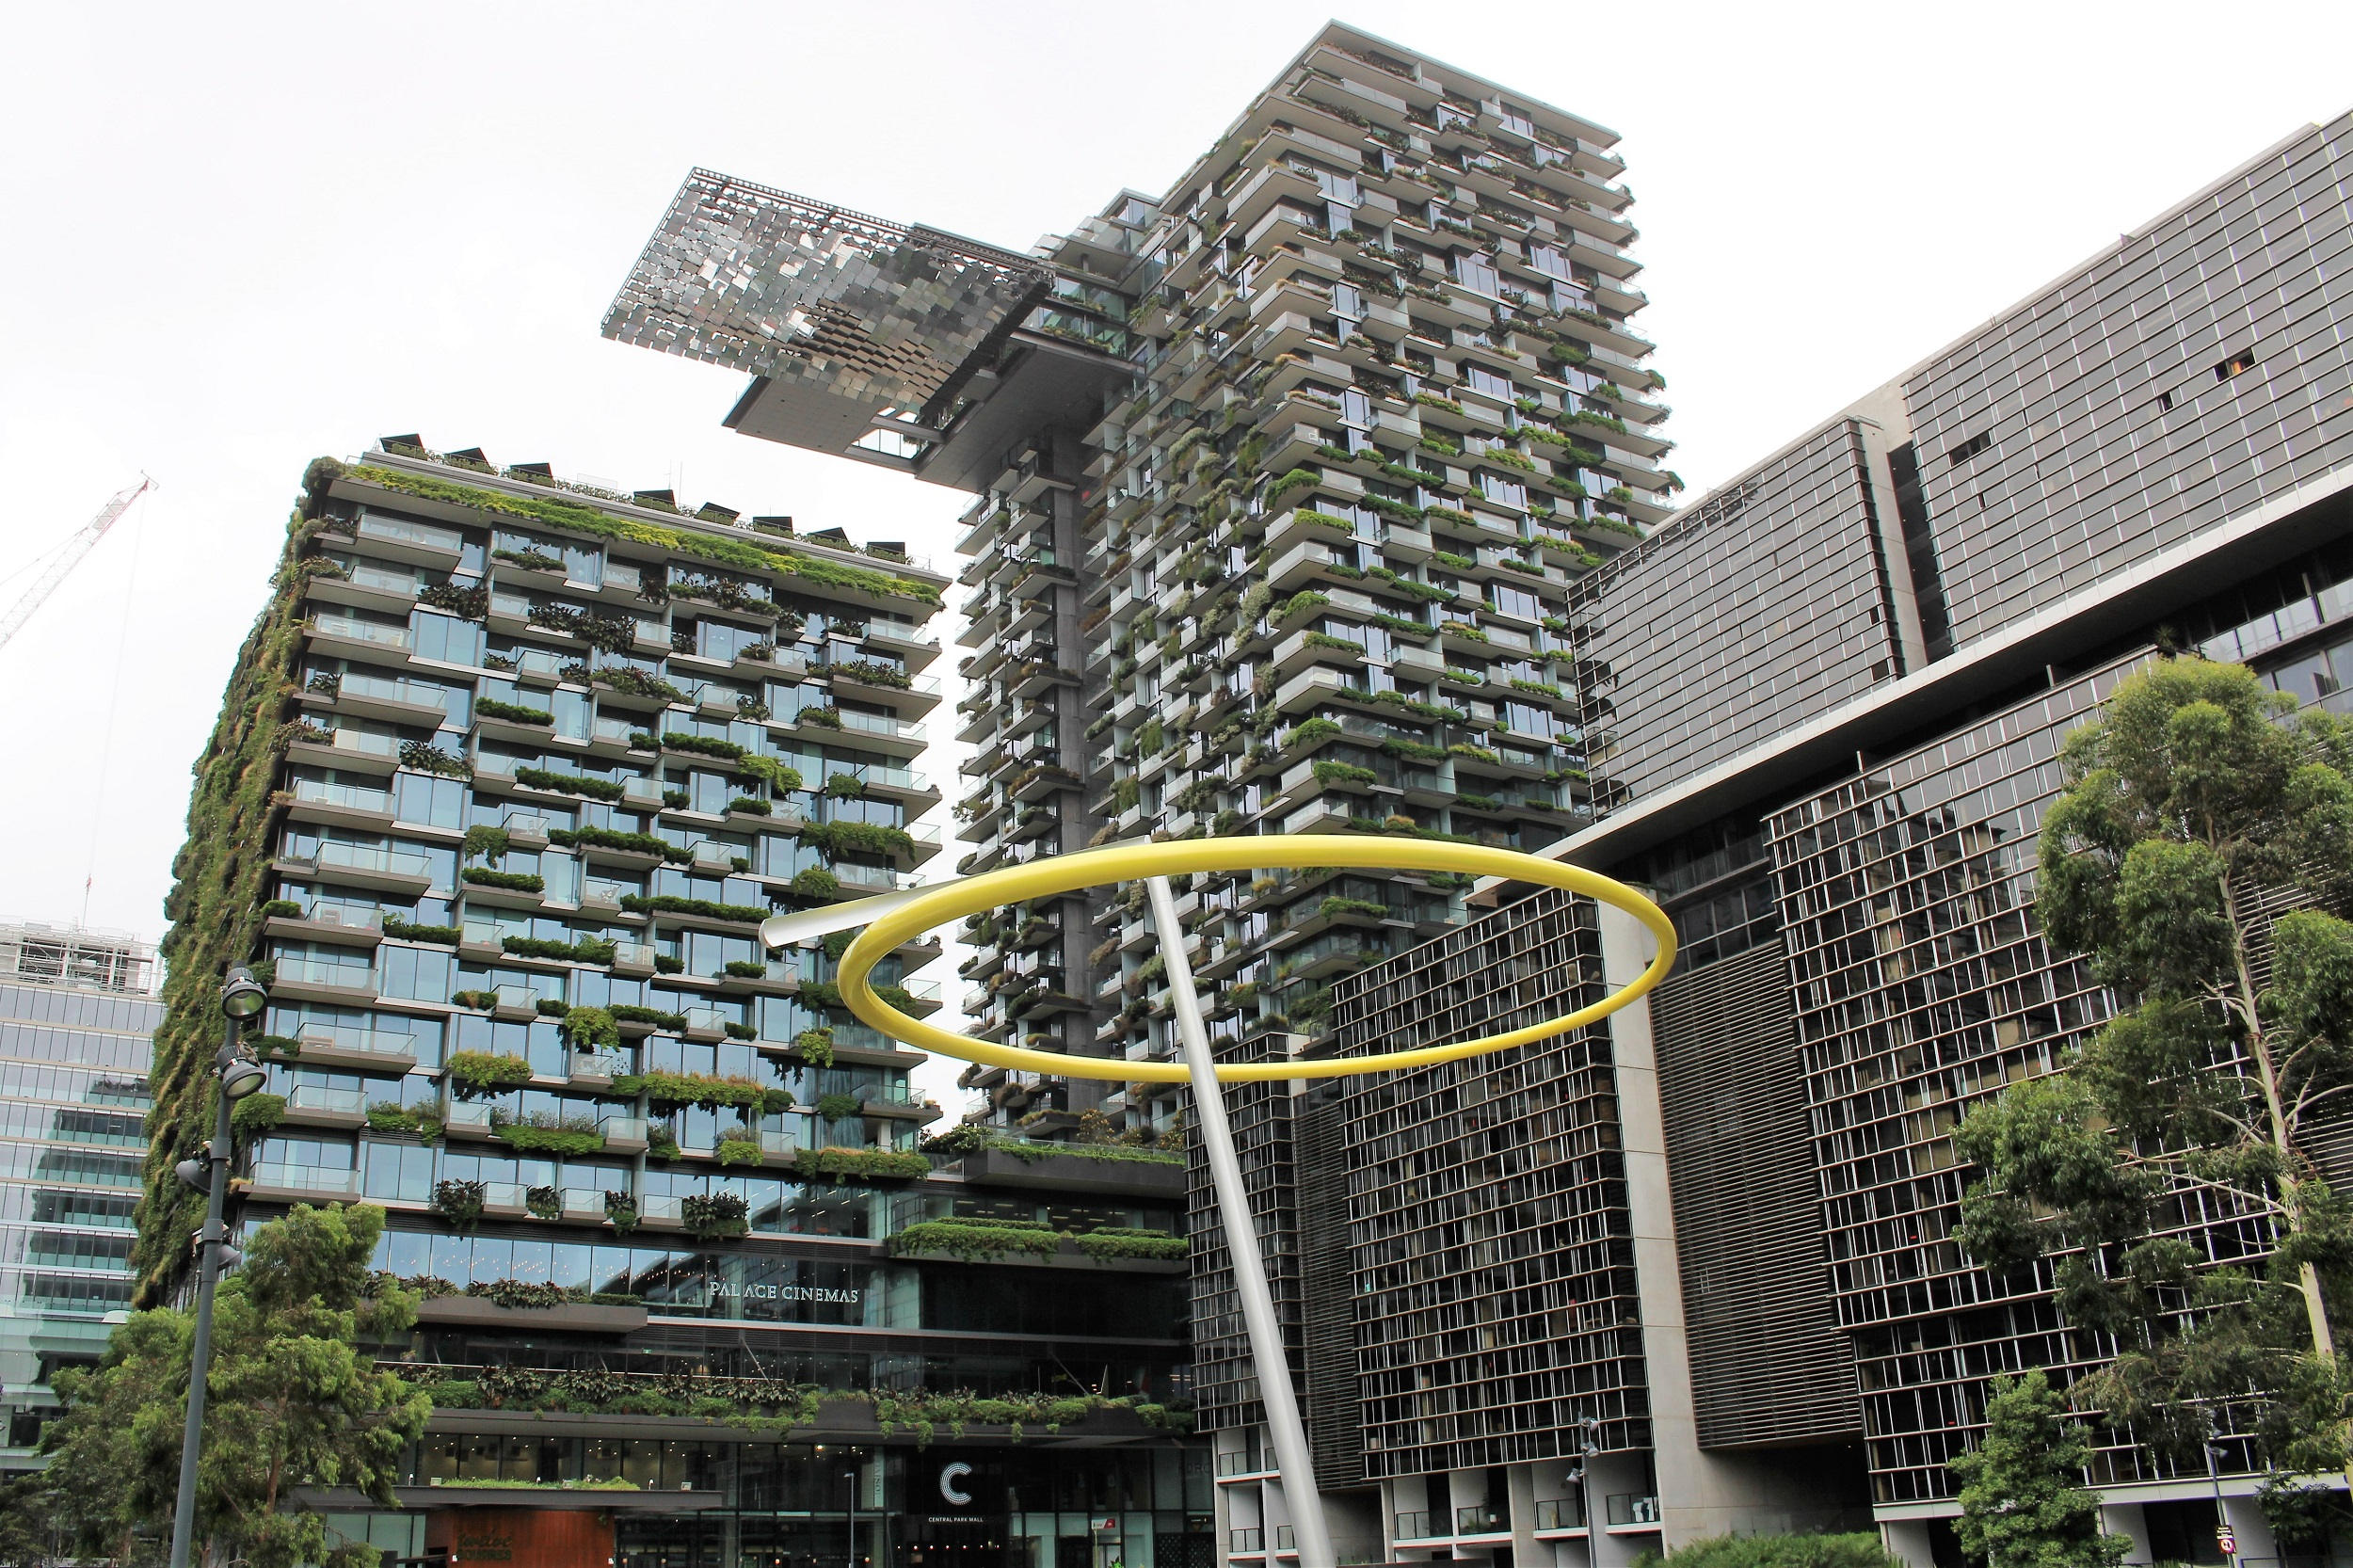 Buildings don't get any greener than Central Park, Chippendale